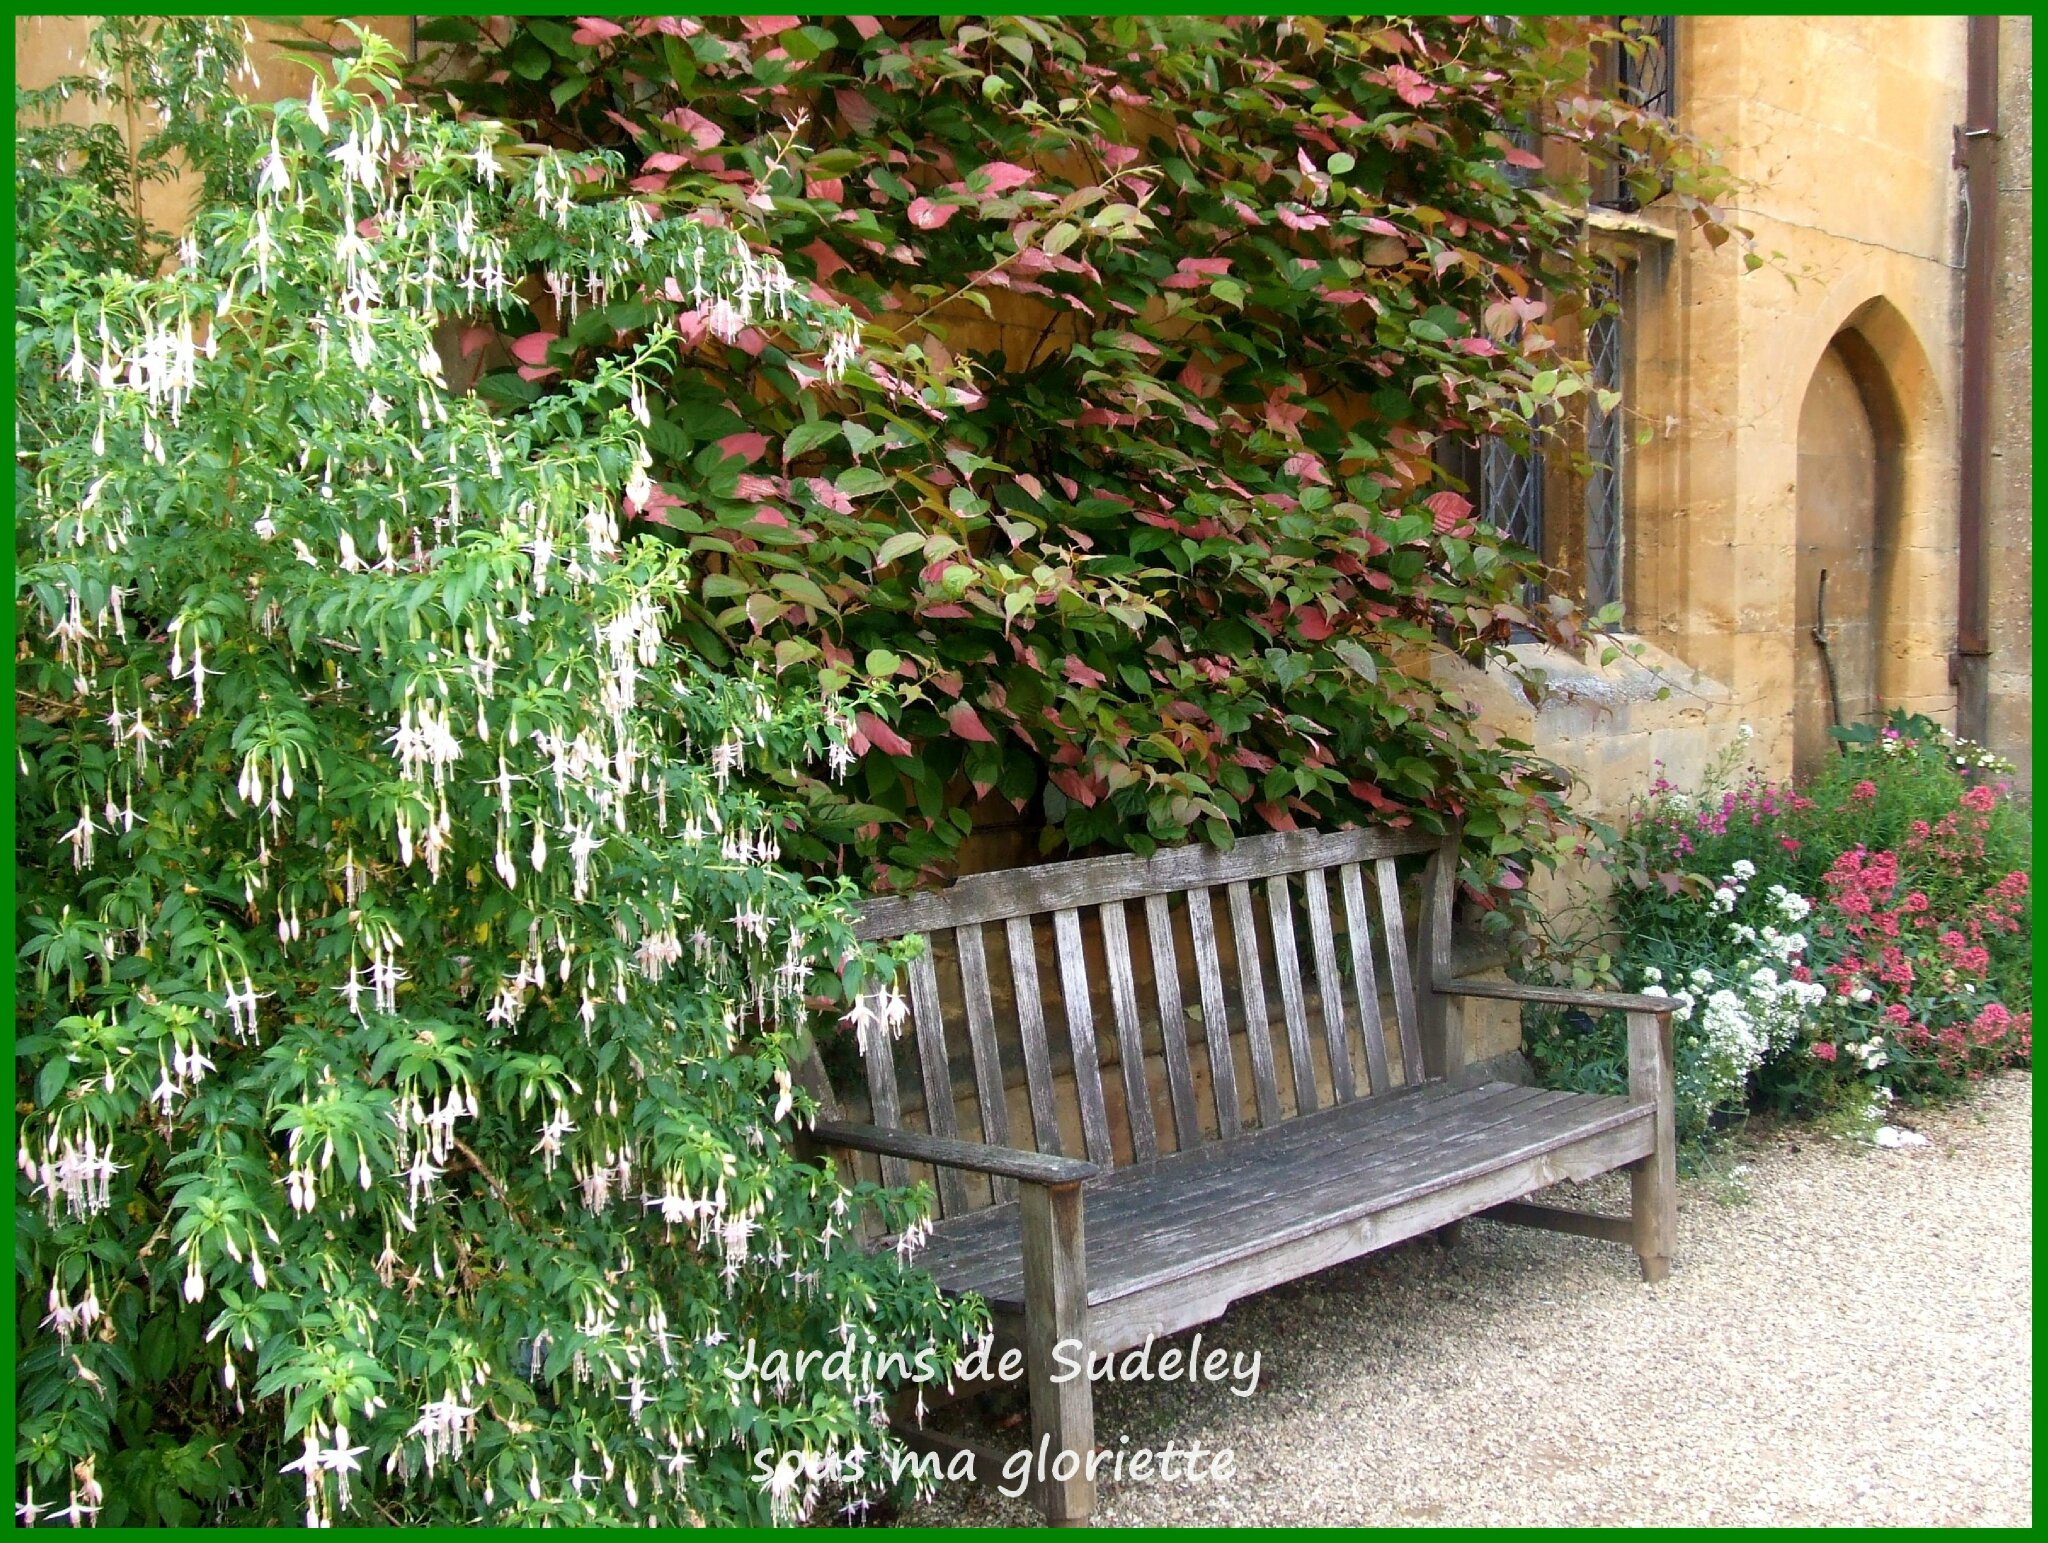 sudeley28